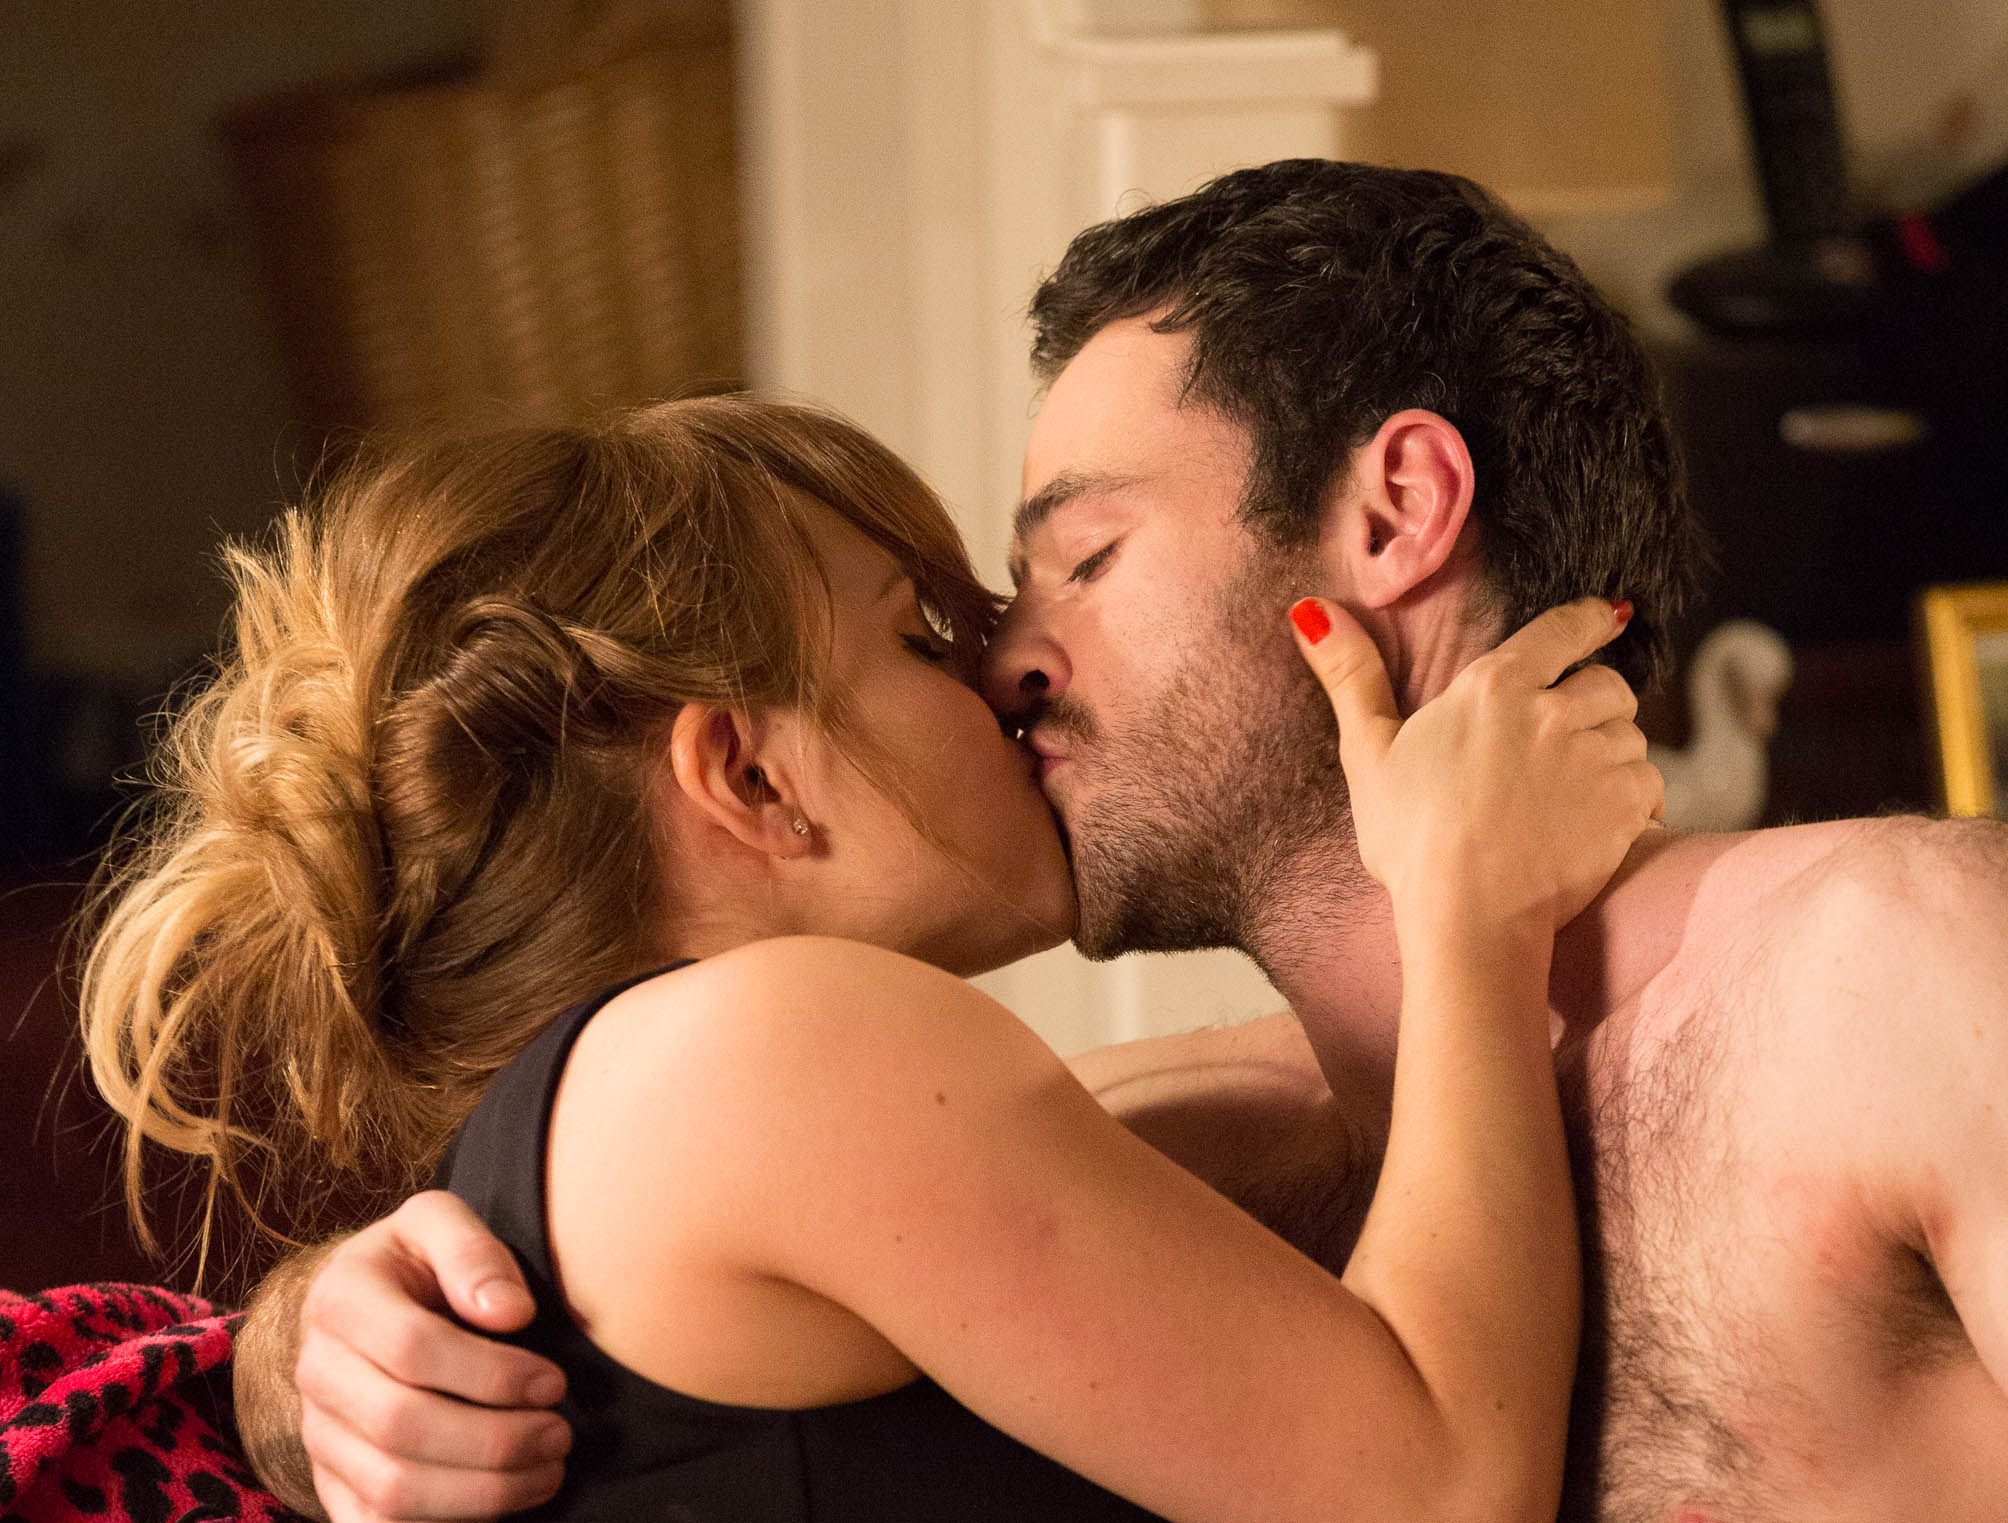 Coronation Street spoilers: Sarah Louise Platt and Callum Logan get passionate – but who will catch them?